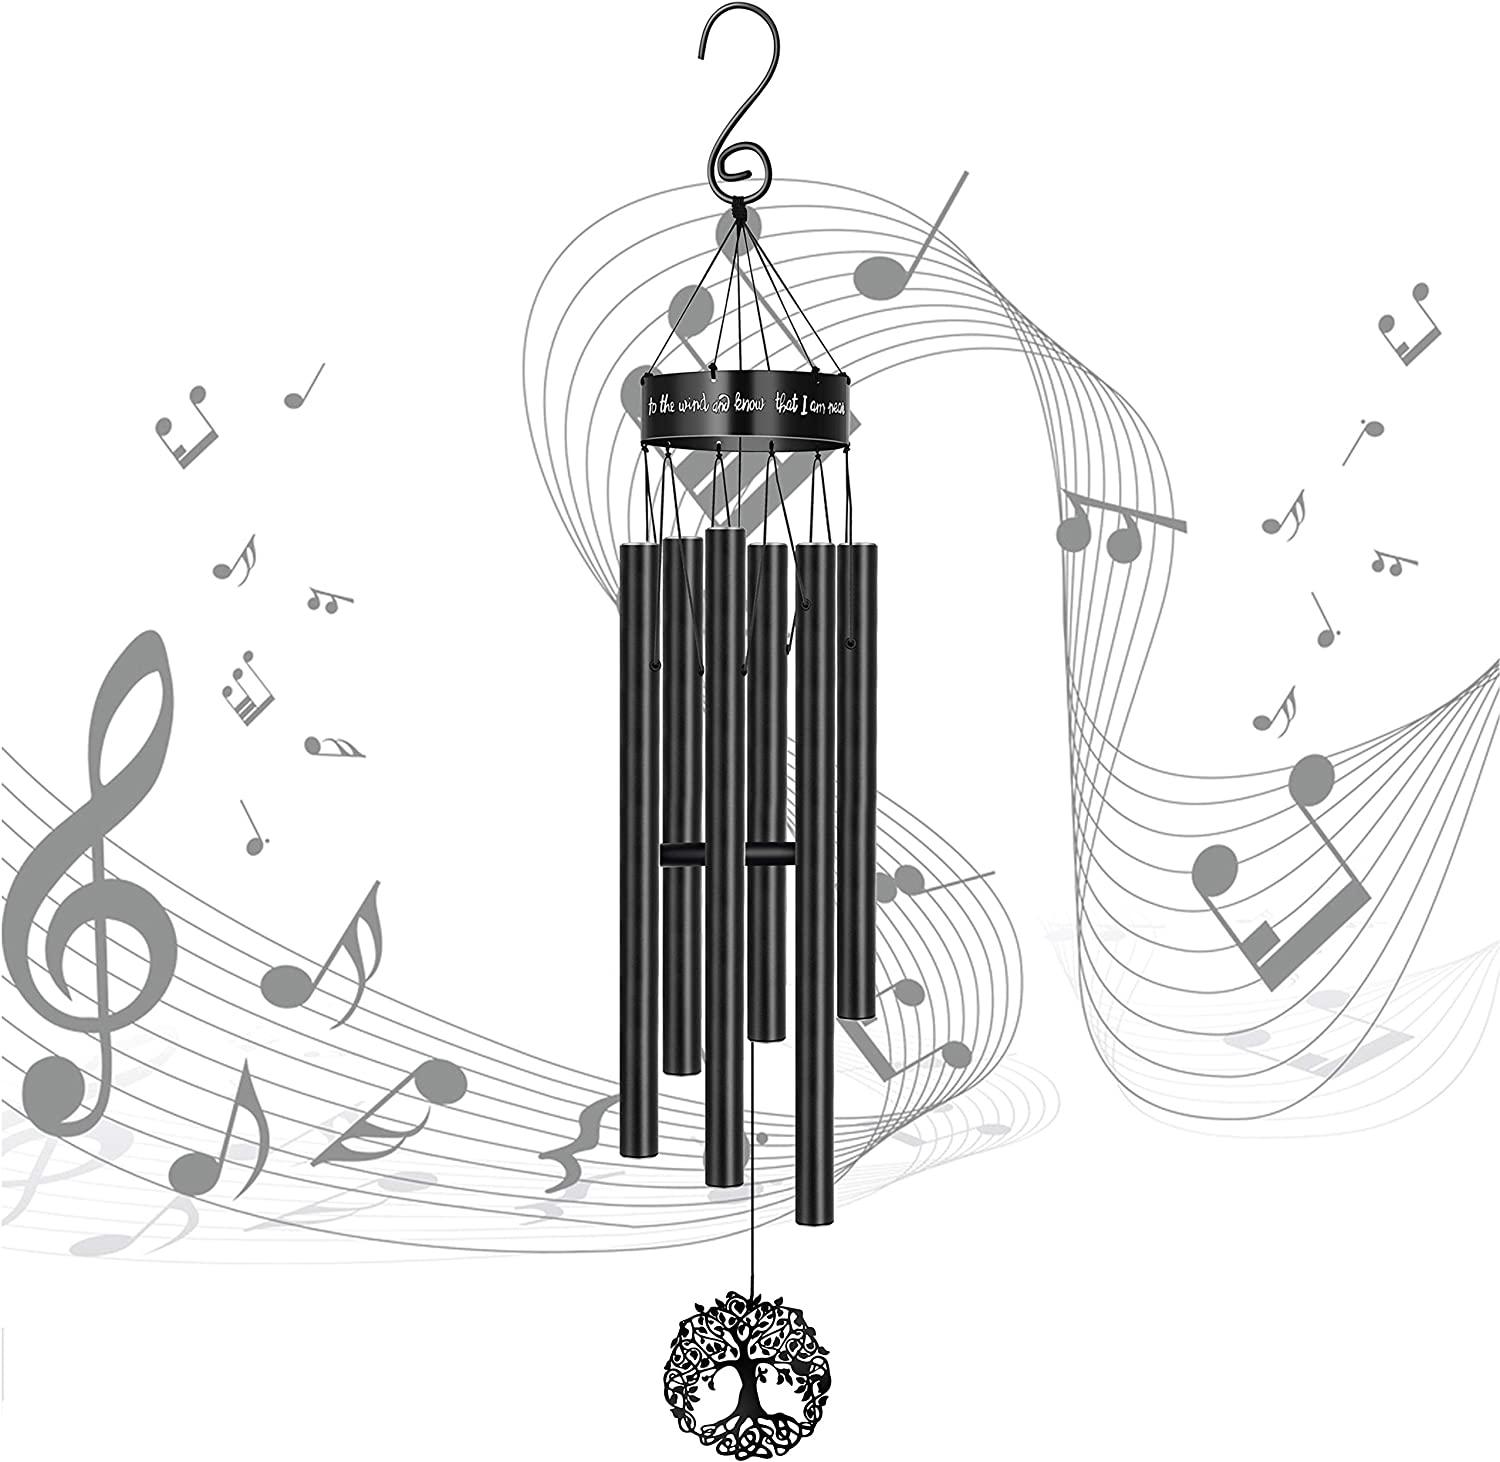 MEMGIFT Wind Chimes Outdoor Deep Tone Large Memorial Windchimes for Loss of Loved One Engrave Tree of Life Sympathy Wind Chimes Gifts for Mother Father Garden Home Yard Hanging Decor Black